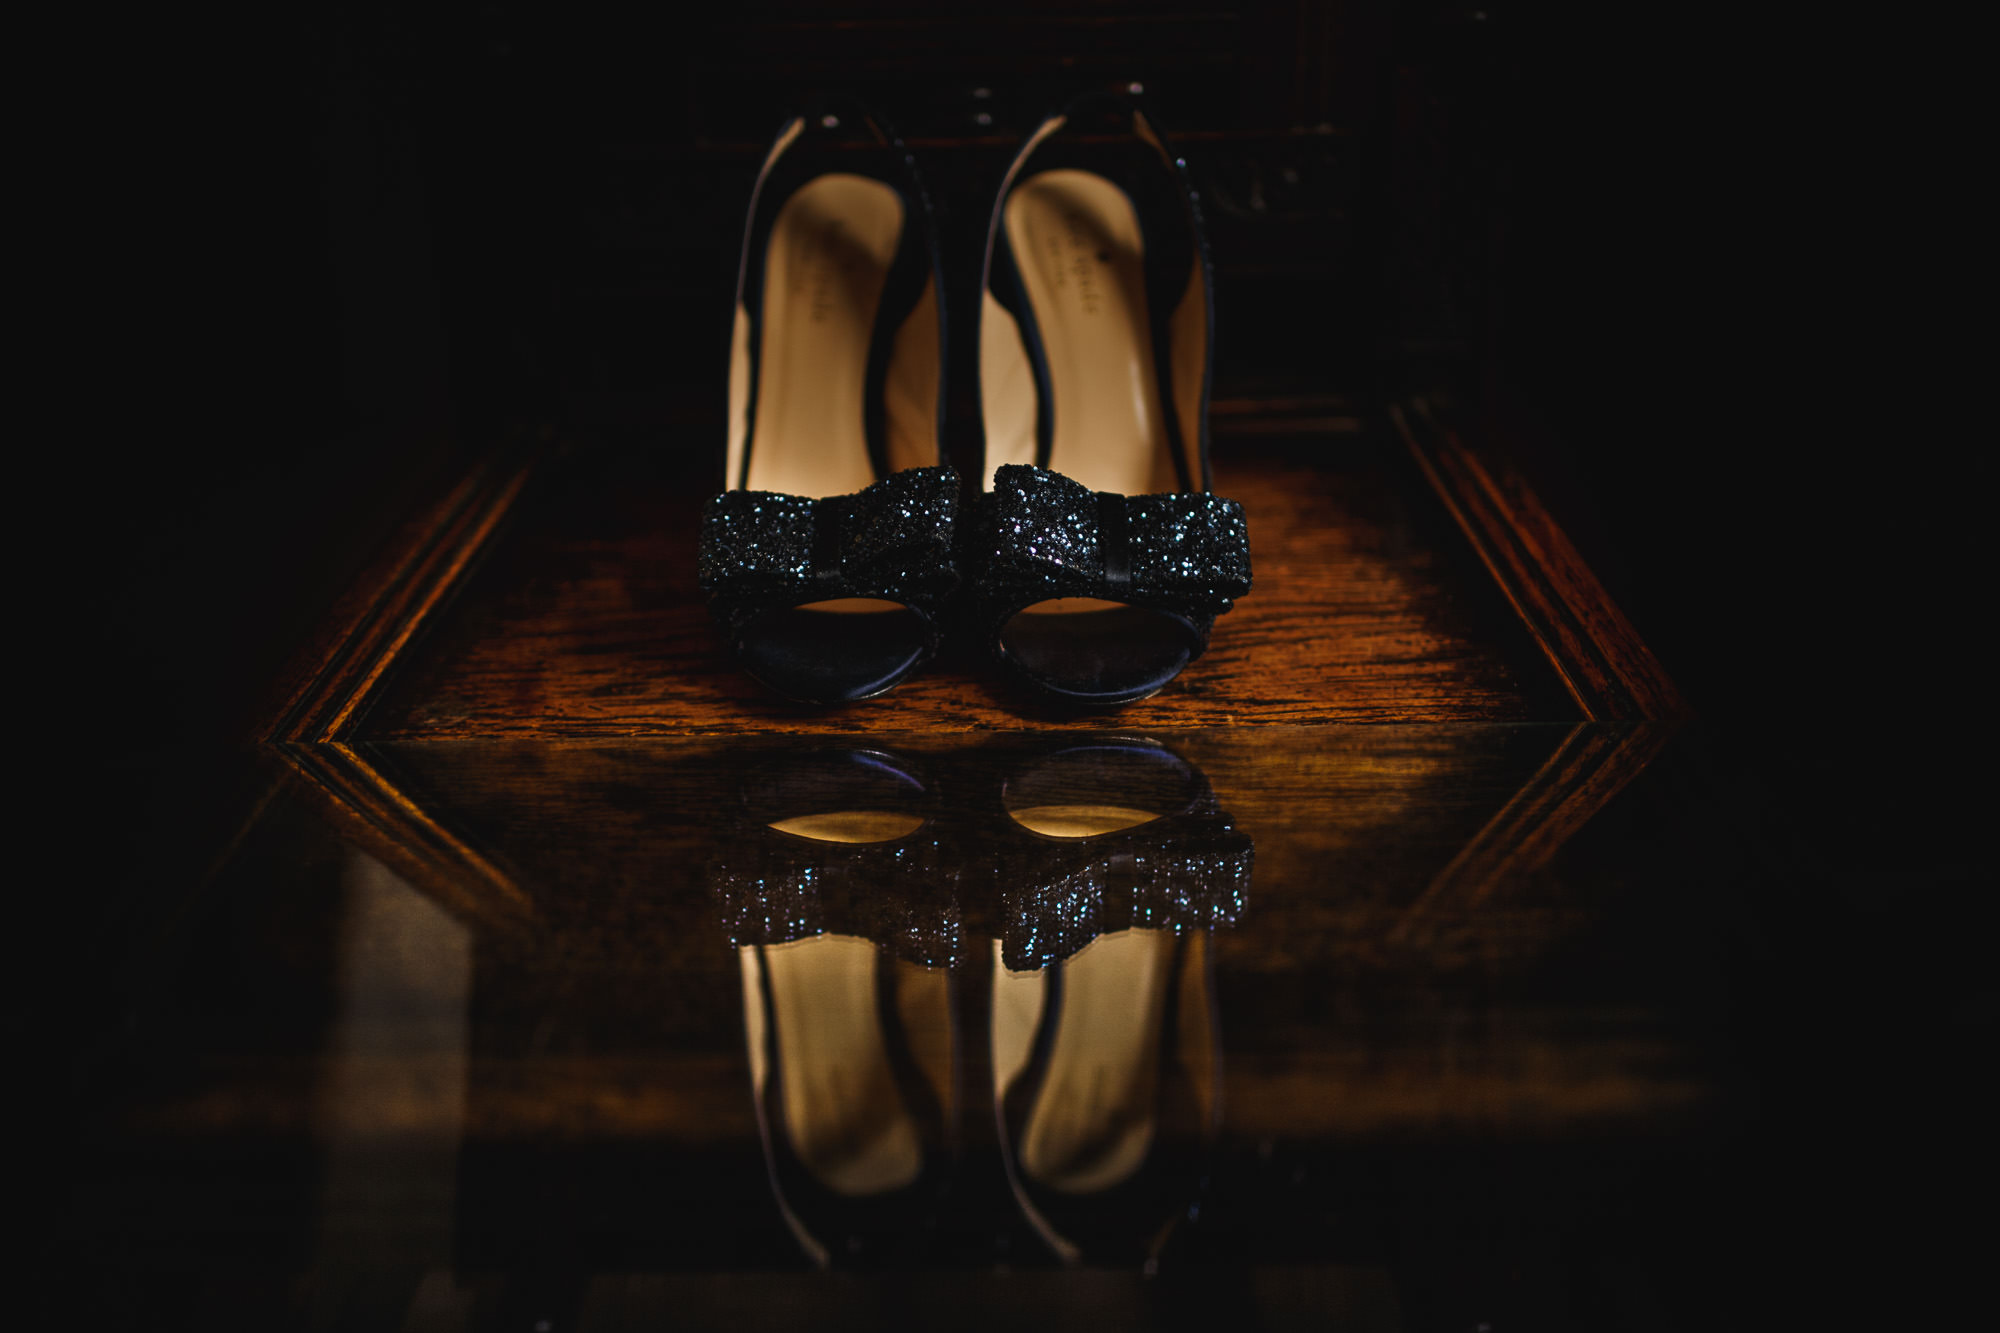 sarah-shoes-wedding-photography-details-01